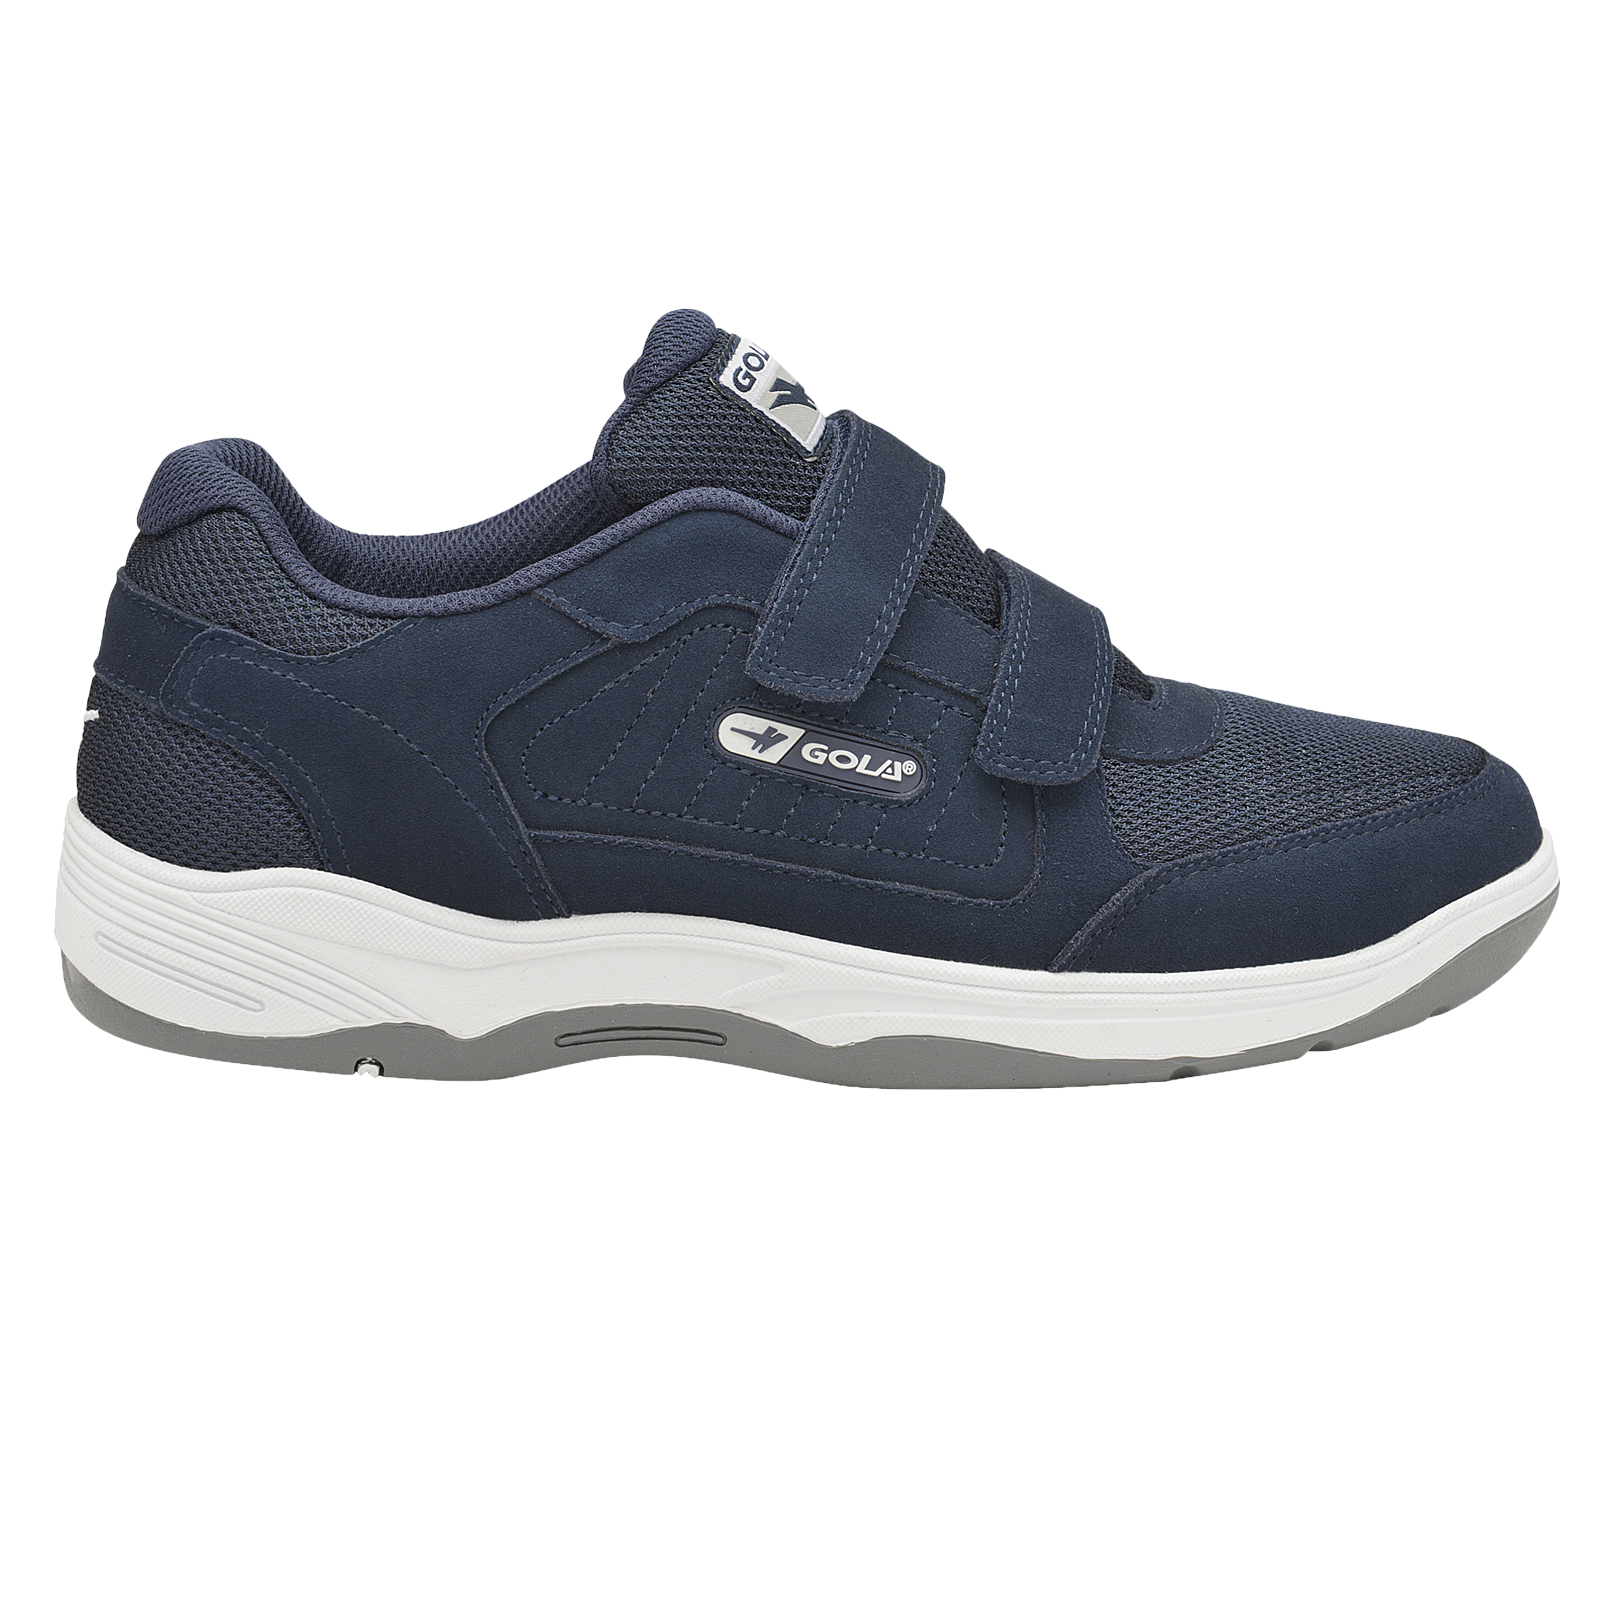 Gola-Belmont-Wide-Fit-EE-Mens-Leather-Or-Suede-Trainers-Size-7-15-UK-Touch-Strap thumbnail 7